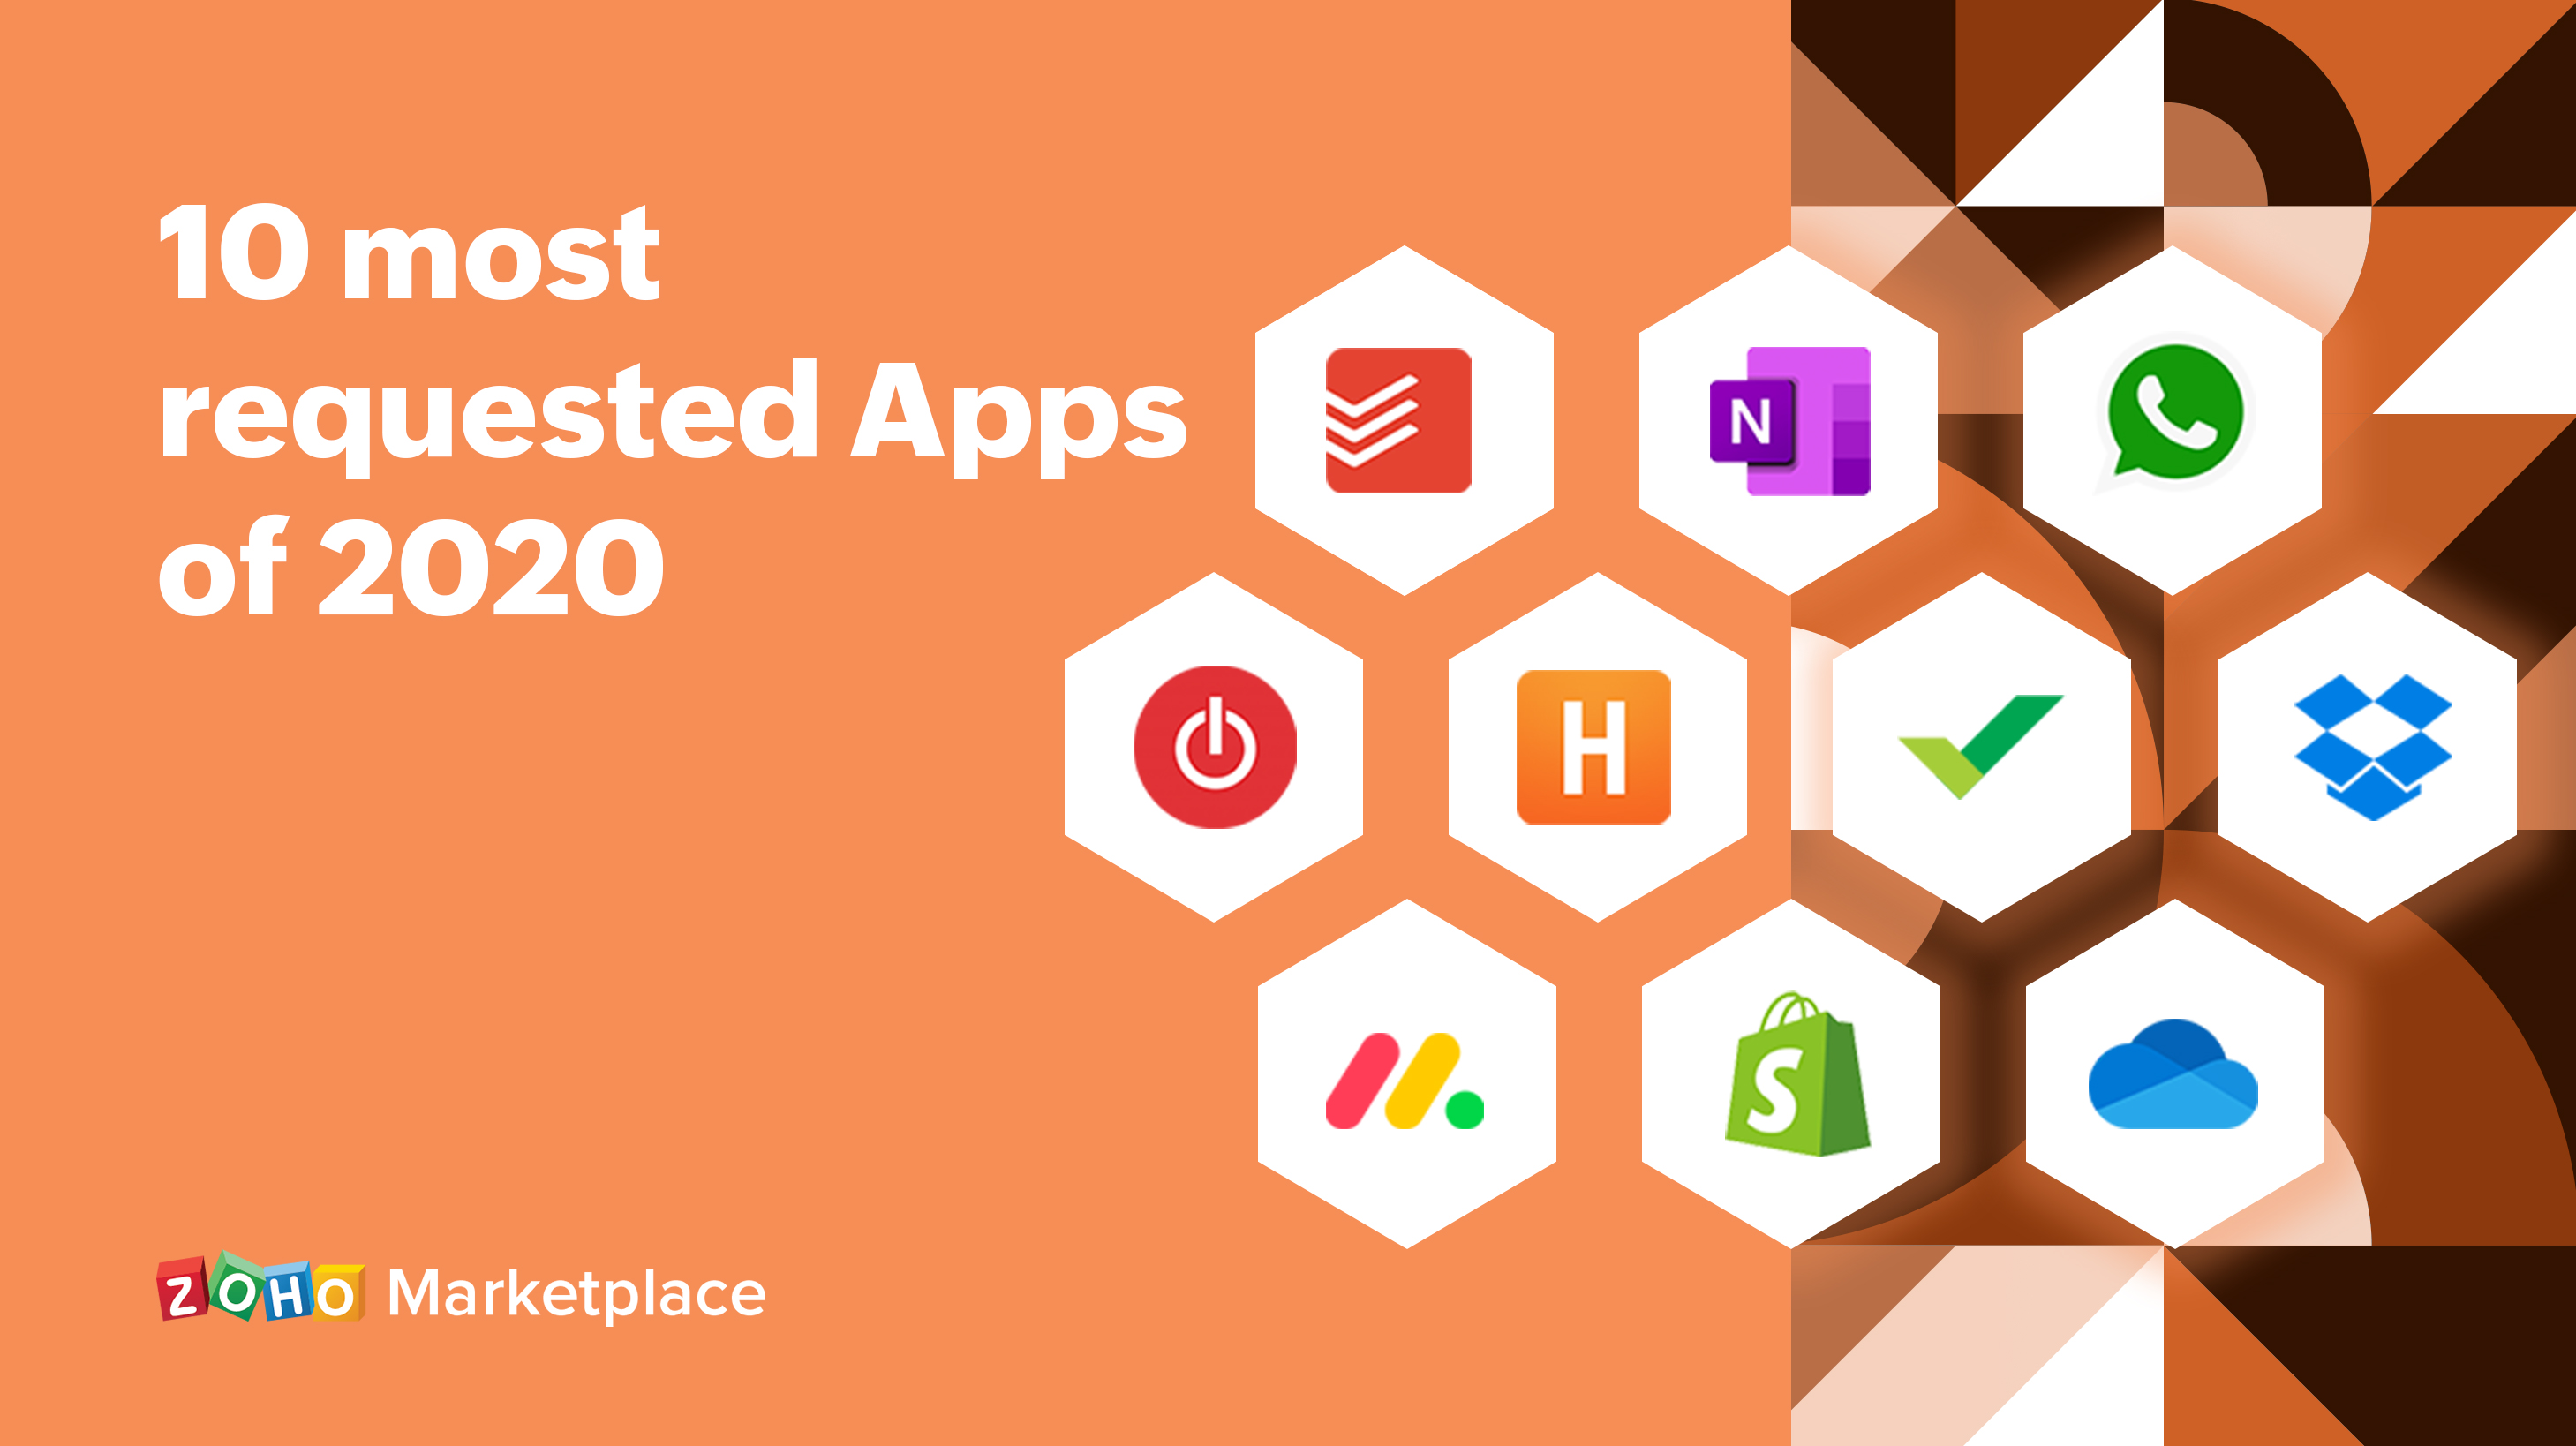 10 most requested apps of 2020